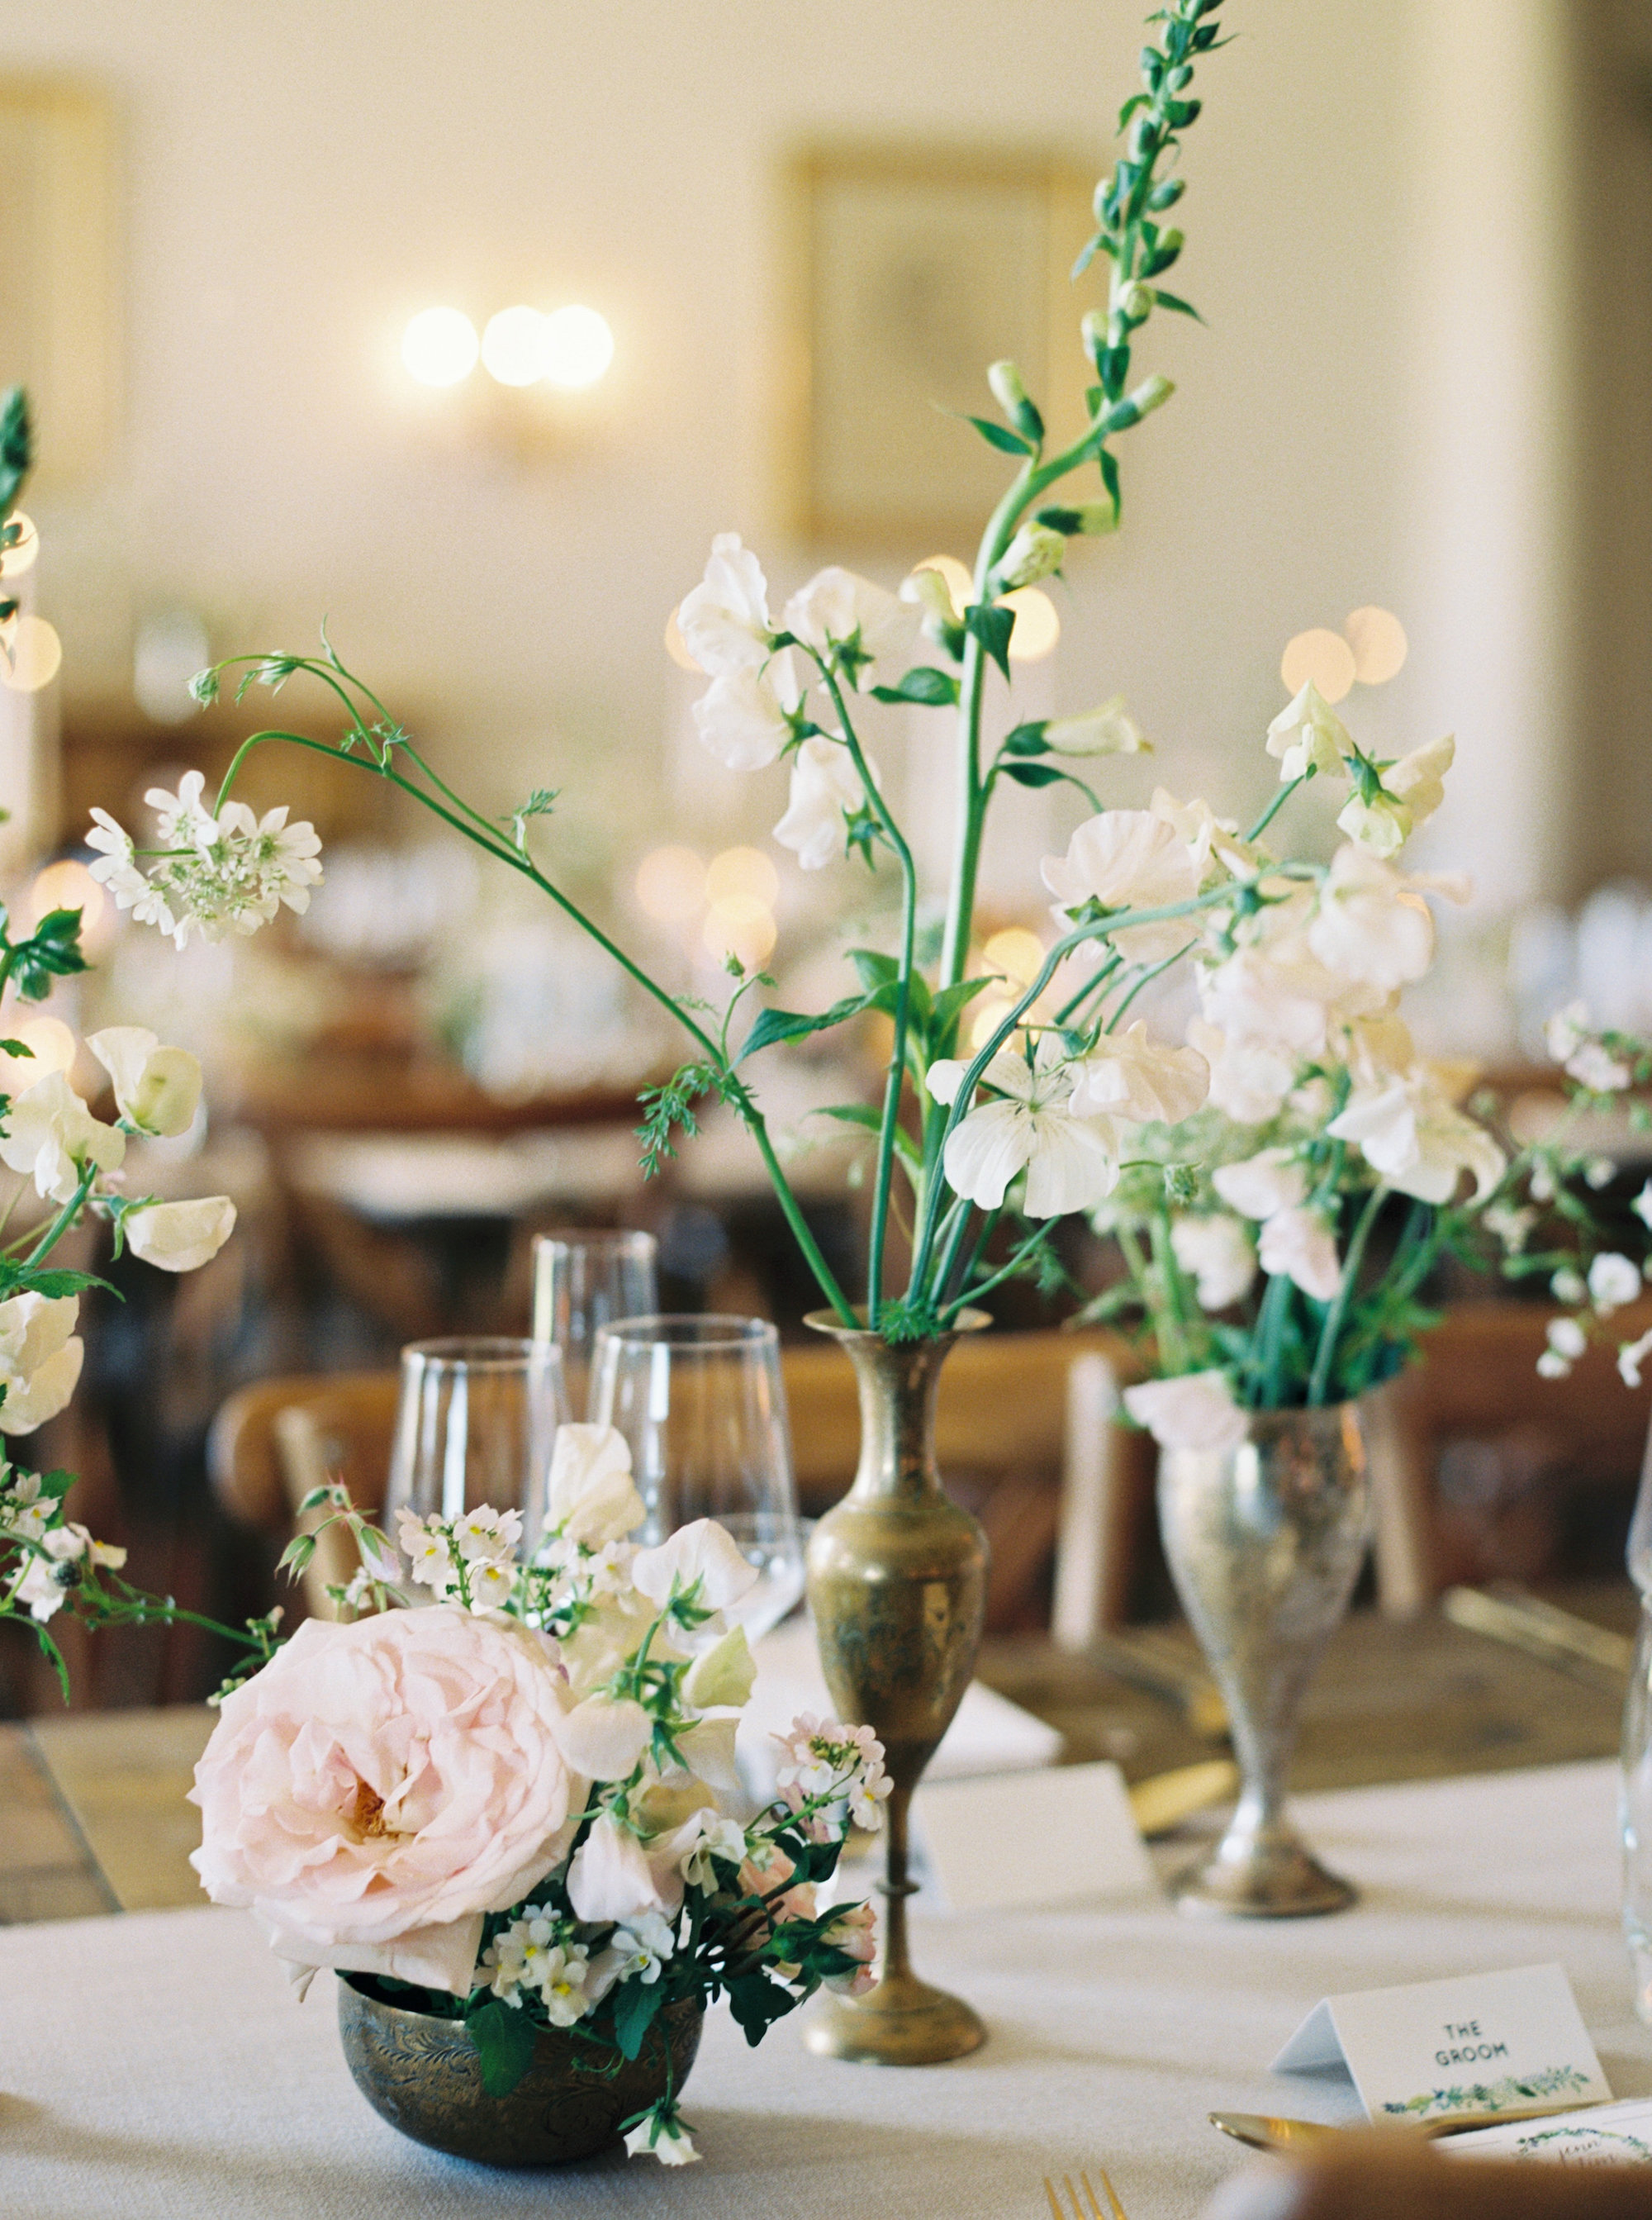 Luxury Wedding Planner UK | Jennifer & Timothy's English Country Manor Wedding | Soft Pink Pale Blue White and Silver Toned Green Neutral Tones American Bride North Cadbury Court | Nicole Colwell Photography 1197.jpg